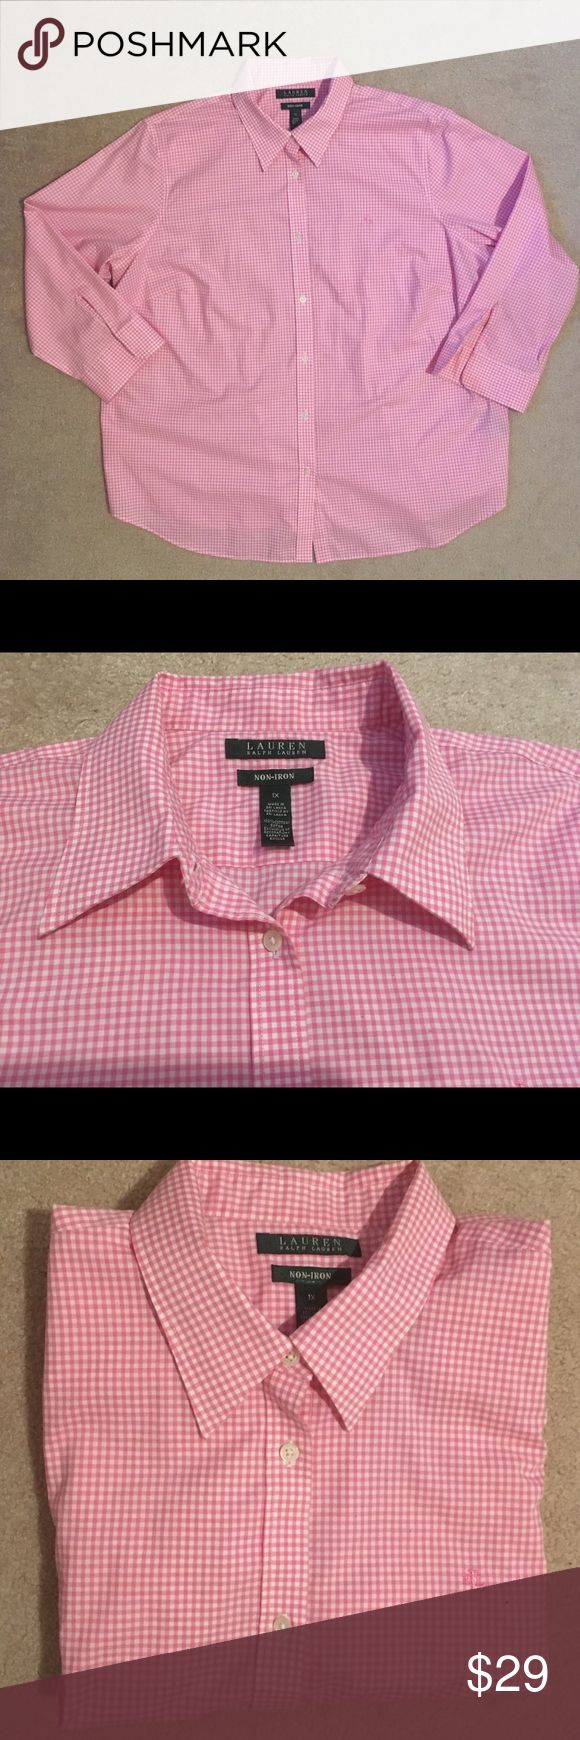 """LAUREN RALPH LAUREN PINK NON IRON SHIRT SIZE M,1X LRL classic pink/white plaid non iron 100% cotton button down with 3/4 sleeves shirt is perfect for work, weekends, dinners, parties. classic snd classy! Shoulders-16"""";chest-21.5"""";length-26""""; Lauren Ralph Lauren Tops Button Down Shirts"""